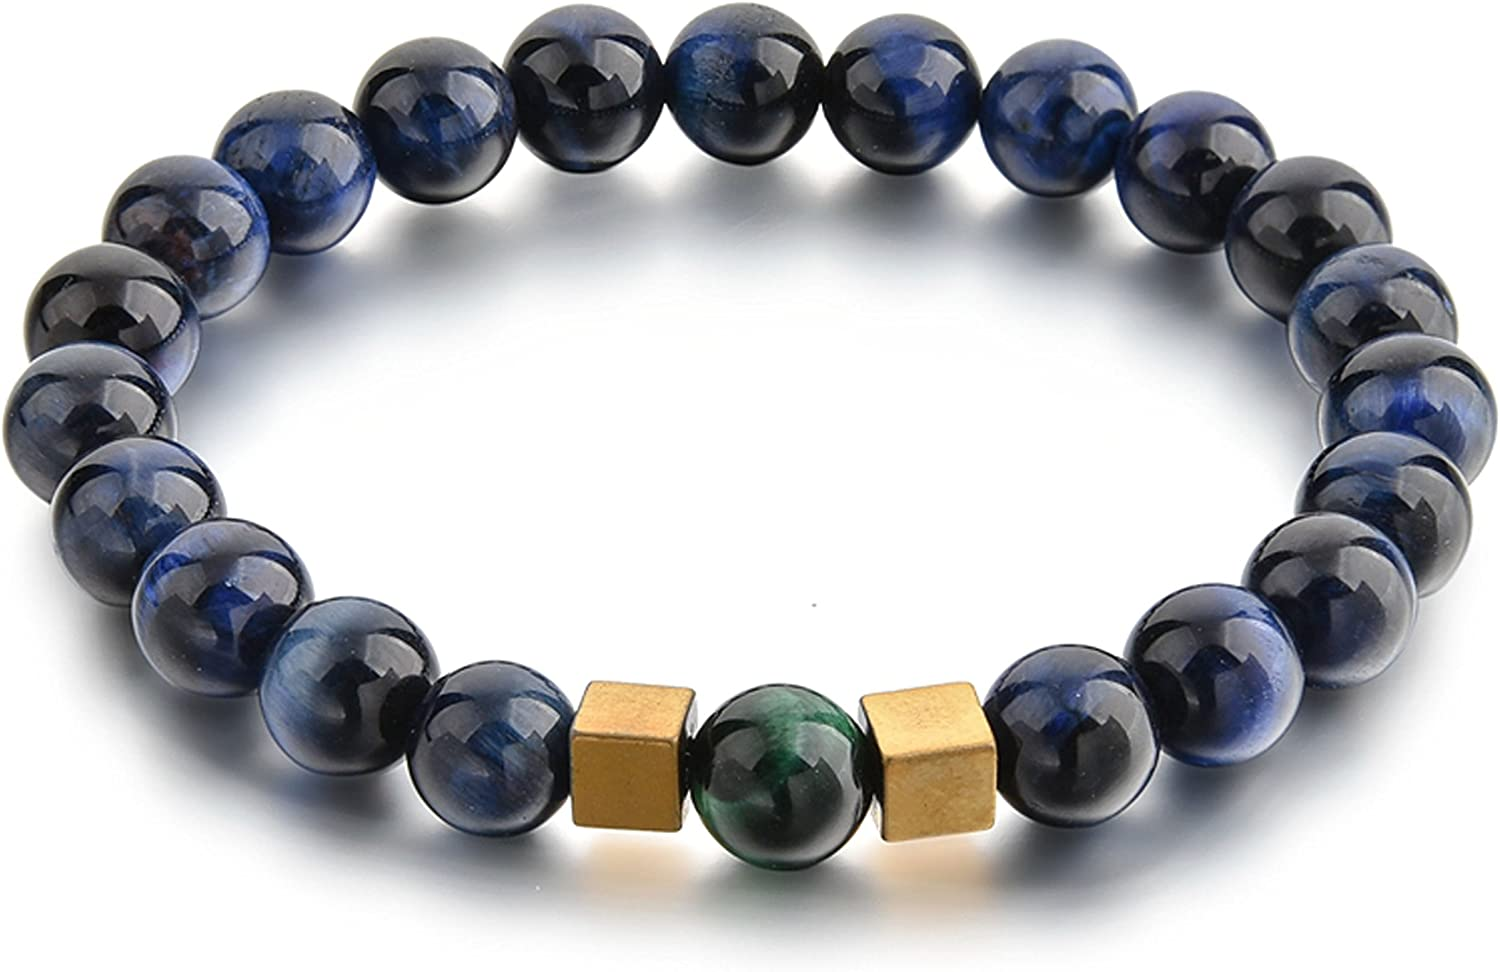 Ino Chakra Protection & Healing Beaded Bracelets for Men and Women - Clear Quartz, Lapis Lazuli, Tiger Eye, Black Onyx, and Buddha Head